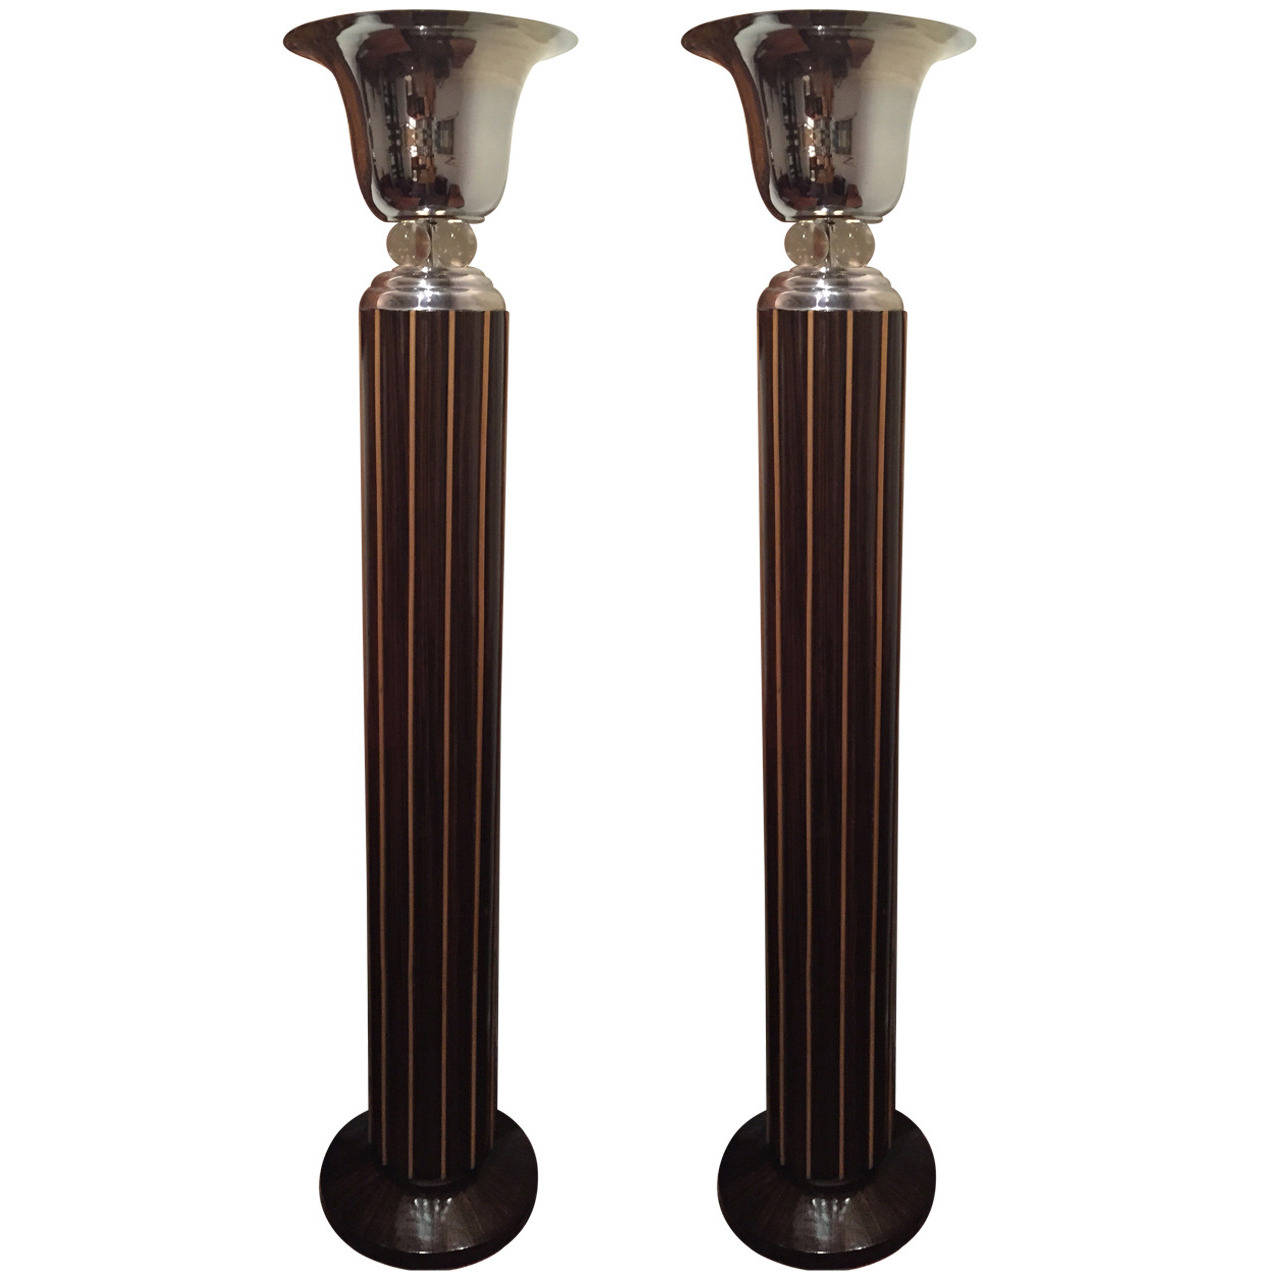 Art deco wooden floor lamp gurus floor Wood floor lamp